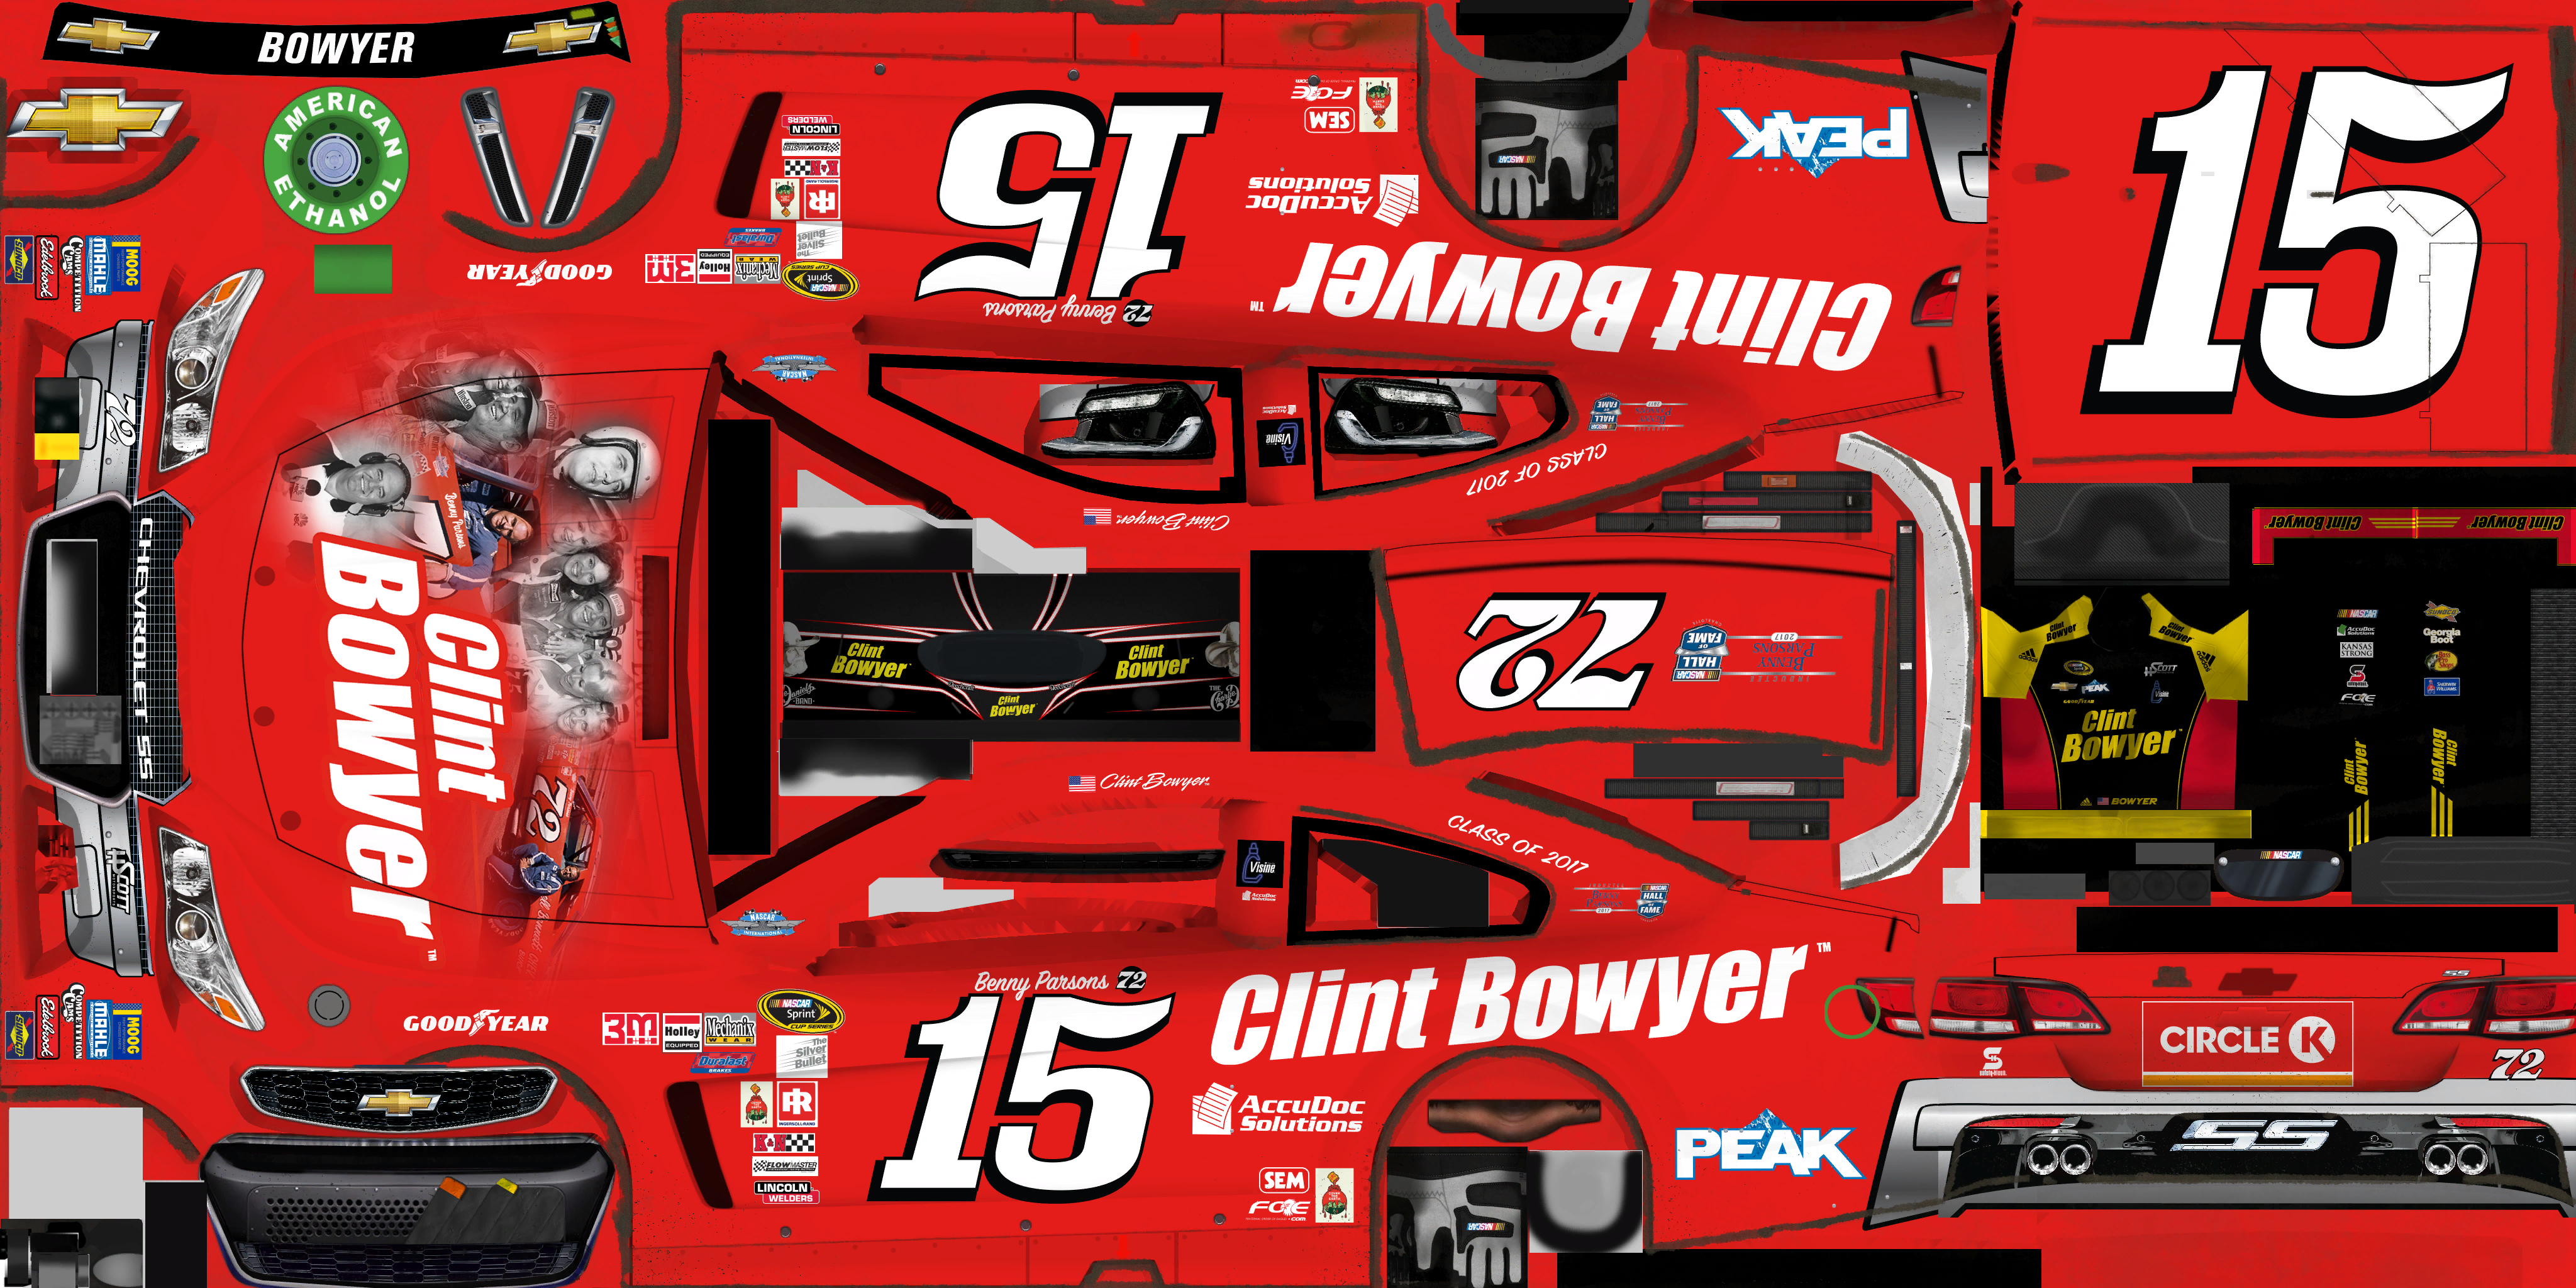 #15 Clint Bowyer (Benny Parsons Throwback)